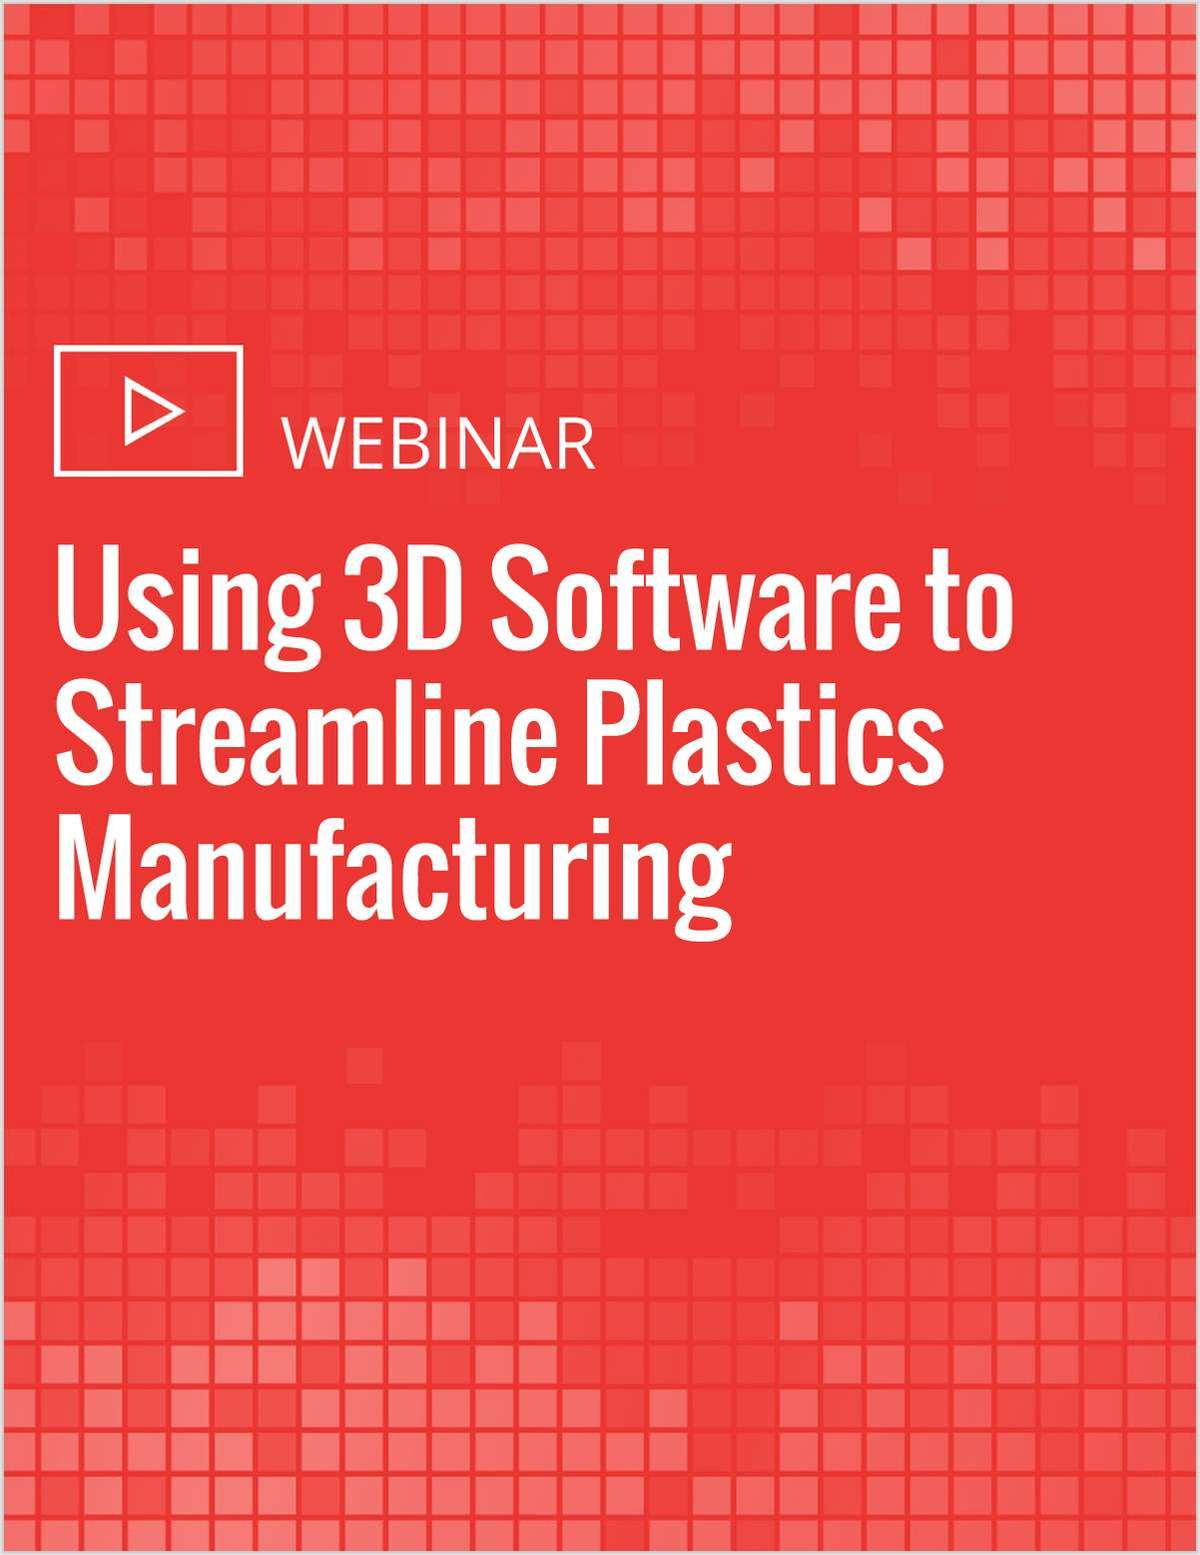 Using 3D Software to Streamline Plastics Manufacturing